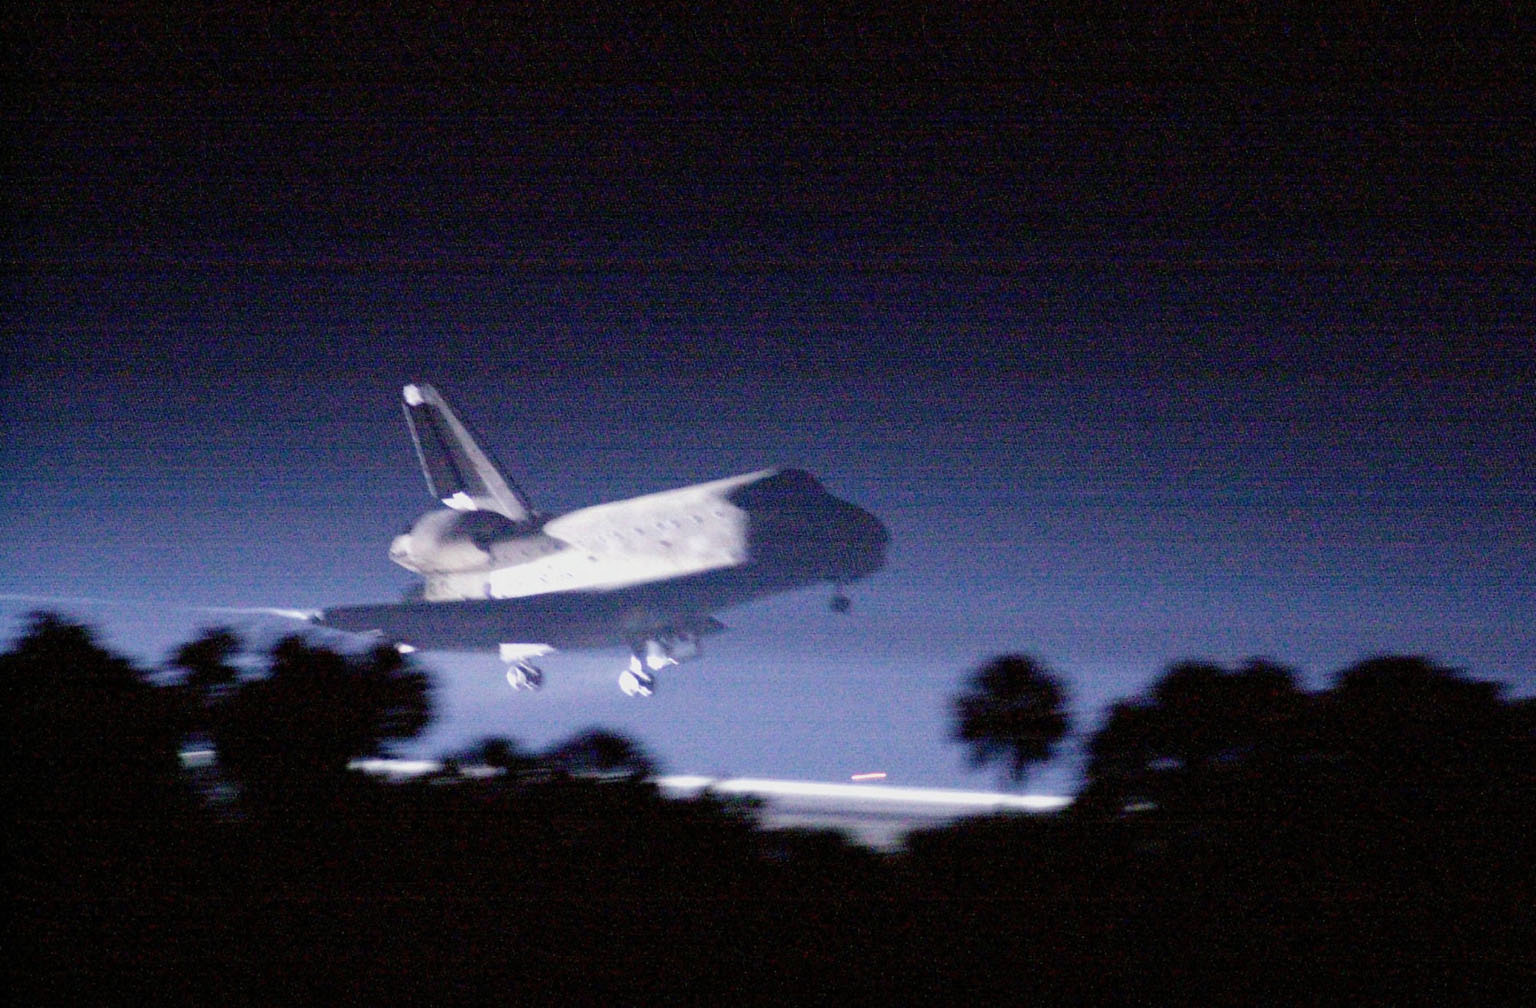 """KENNEDY SPACE CENTER, Fla. -- Landing lights illuminate the night sky as Space Shuttle Atlantis approaches touchdown on KSC's Shuttle Landing Facility Runway 15 to complete the 9-day, 20-hour, 9-minute-long STS-101 mission. At the controls are Commander James D. Halsell Jr. and Pilot Scott """"Doc"""" Horowitz. Also onboard the orbiter are Mission Specialists Mary Ellen Weber, James S. Voss, Jeffrey N. Williams, Susan J. Helms and Yury Usachev of Russia. The crew is returning from the third flight to the International Space Station. This was the 98th flight in the Space Shuttle program and the 21st for Atlantis, also marking the 51st landing at KSC, the 22nd consecutive landing at KSC, and the 29th in the last 30 Shuttle flights. Main gear touchdown was at 2:20:17 a.m. EDT, landing on orbit 155 of the mission. Nose gear touchdown was at 2:20:30 a.m. EDT, and wheel stop at 2:21:19 a.m. EDT"""